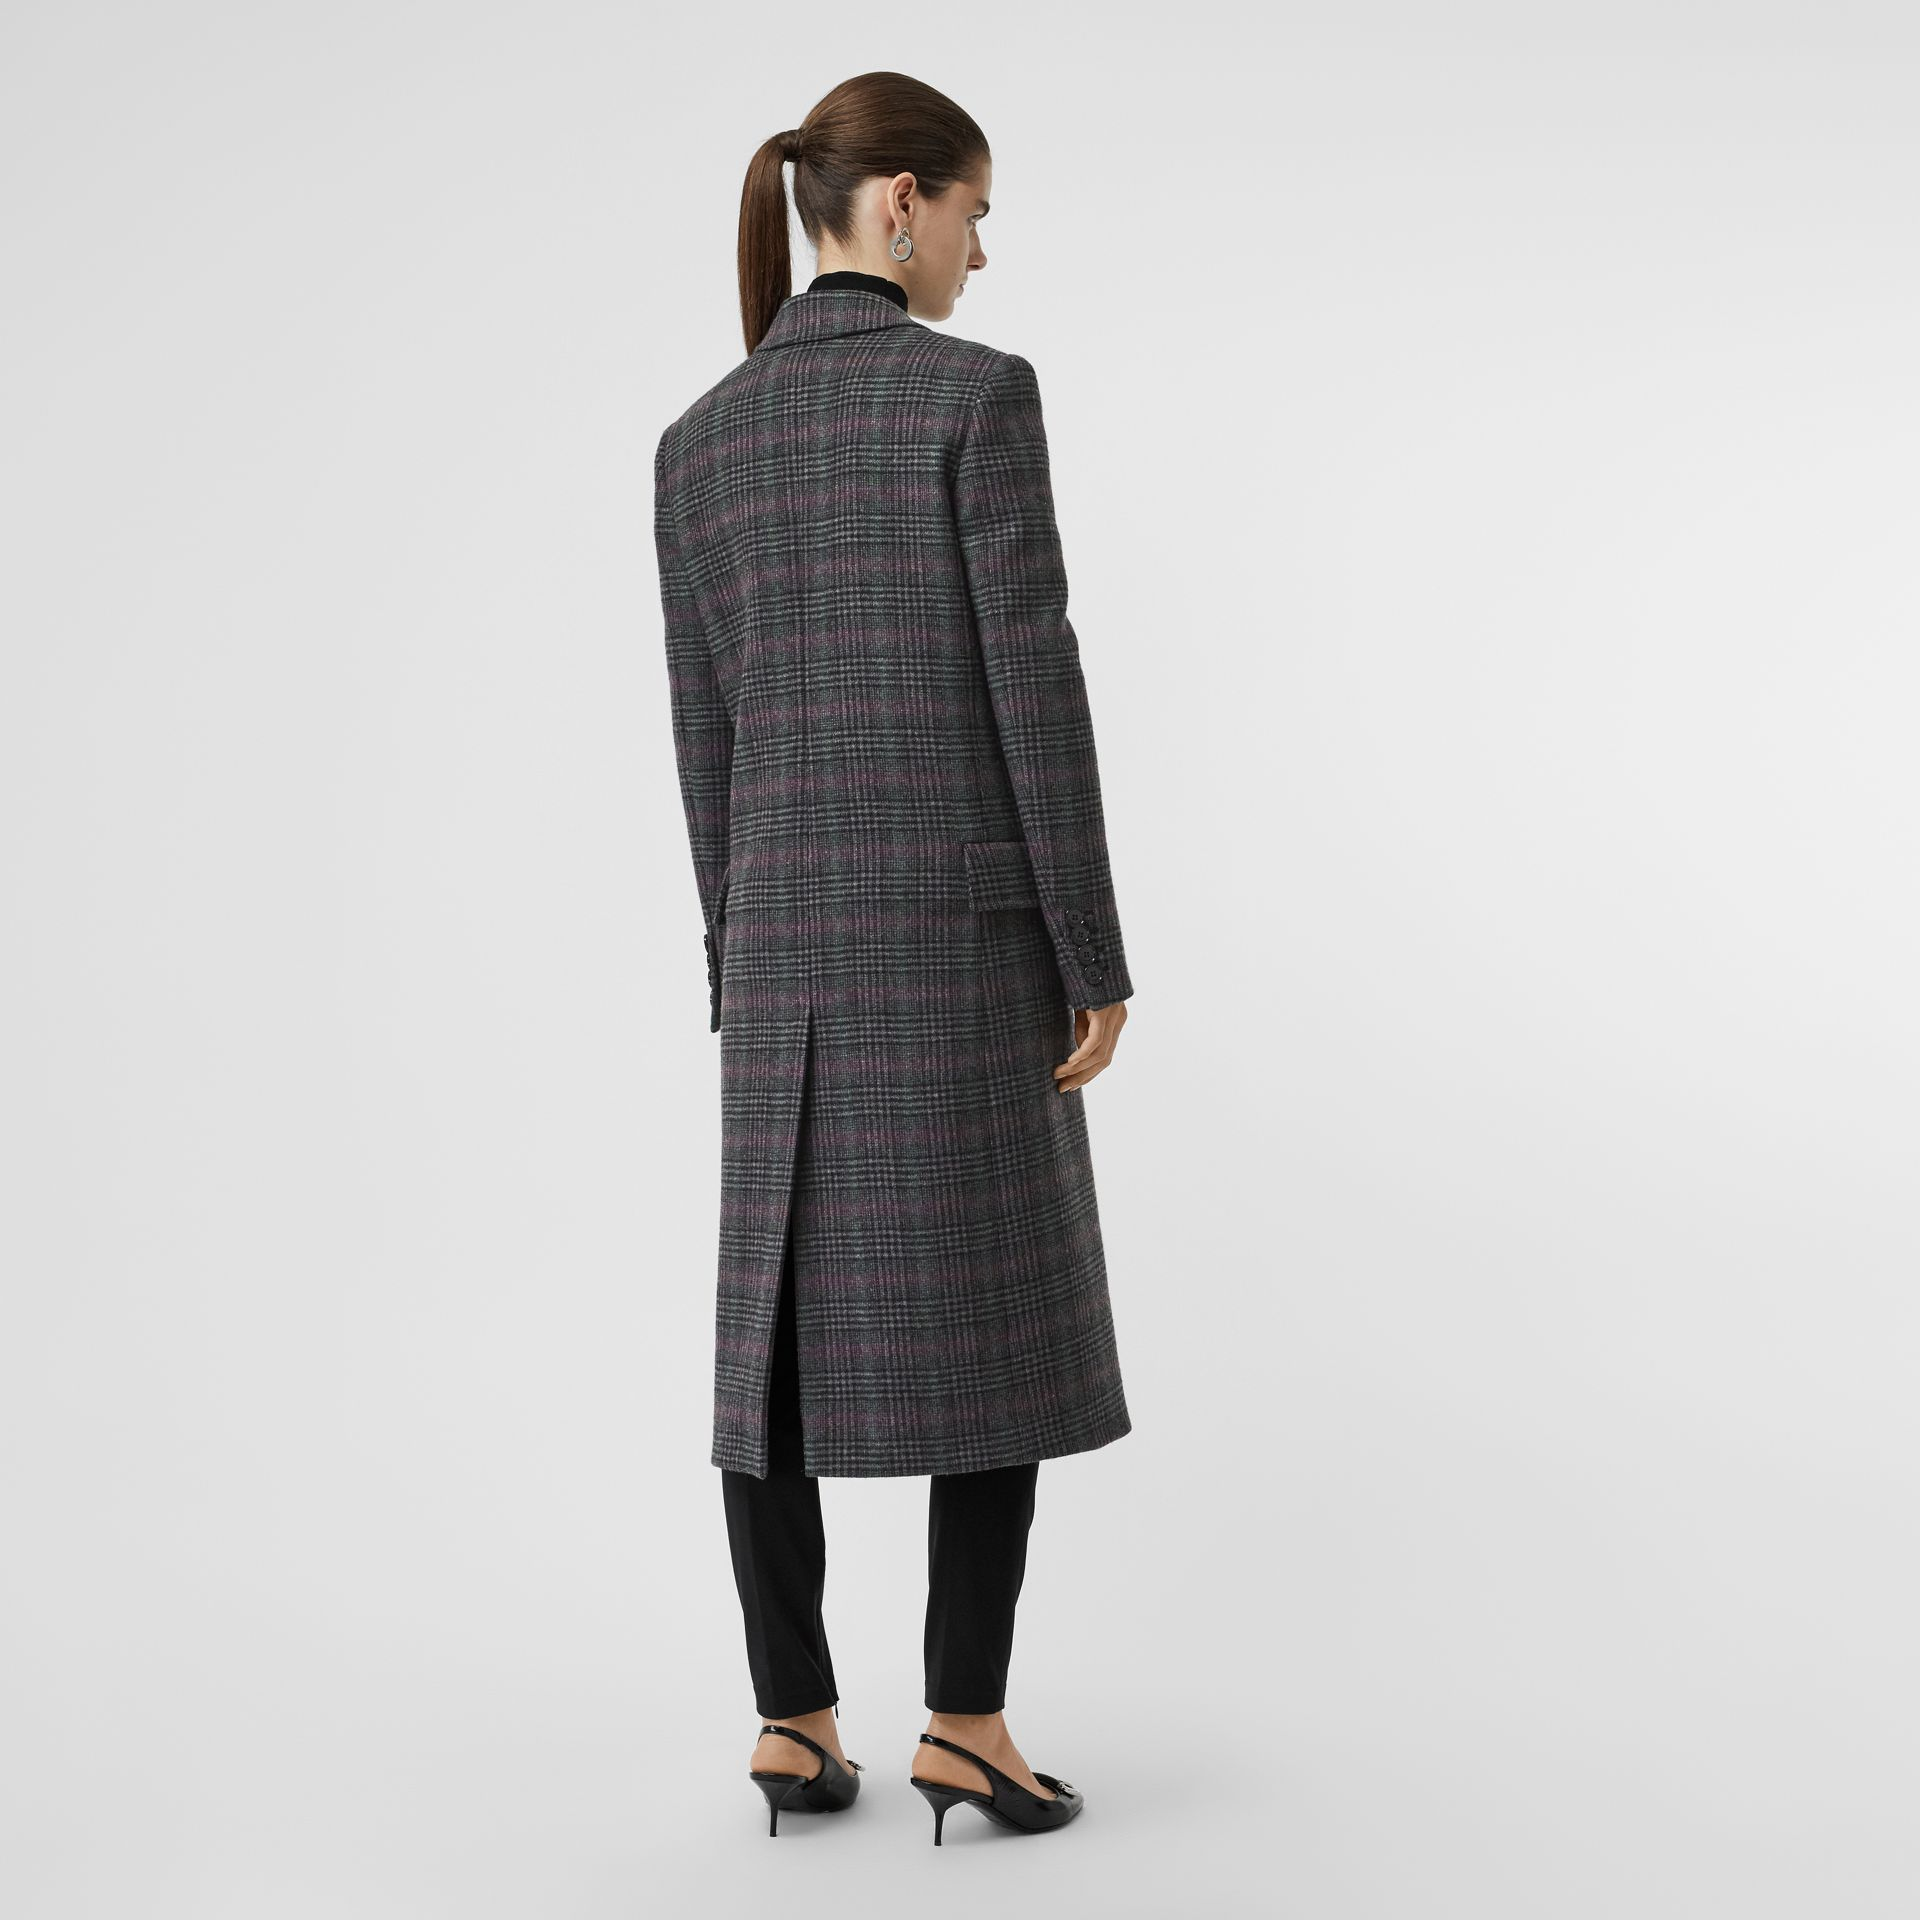 Prince of Wales Check Wool Tailored Coat in Charcoal - Women | Burberry Canada - gallery image 2